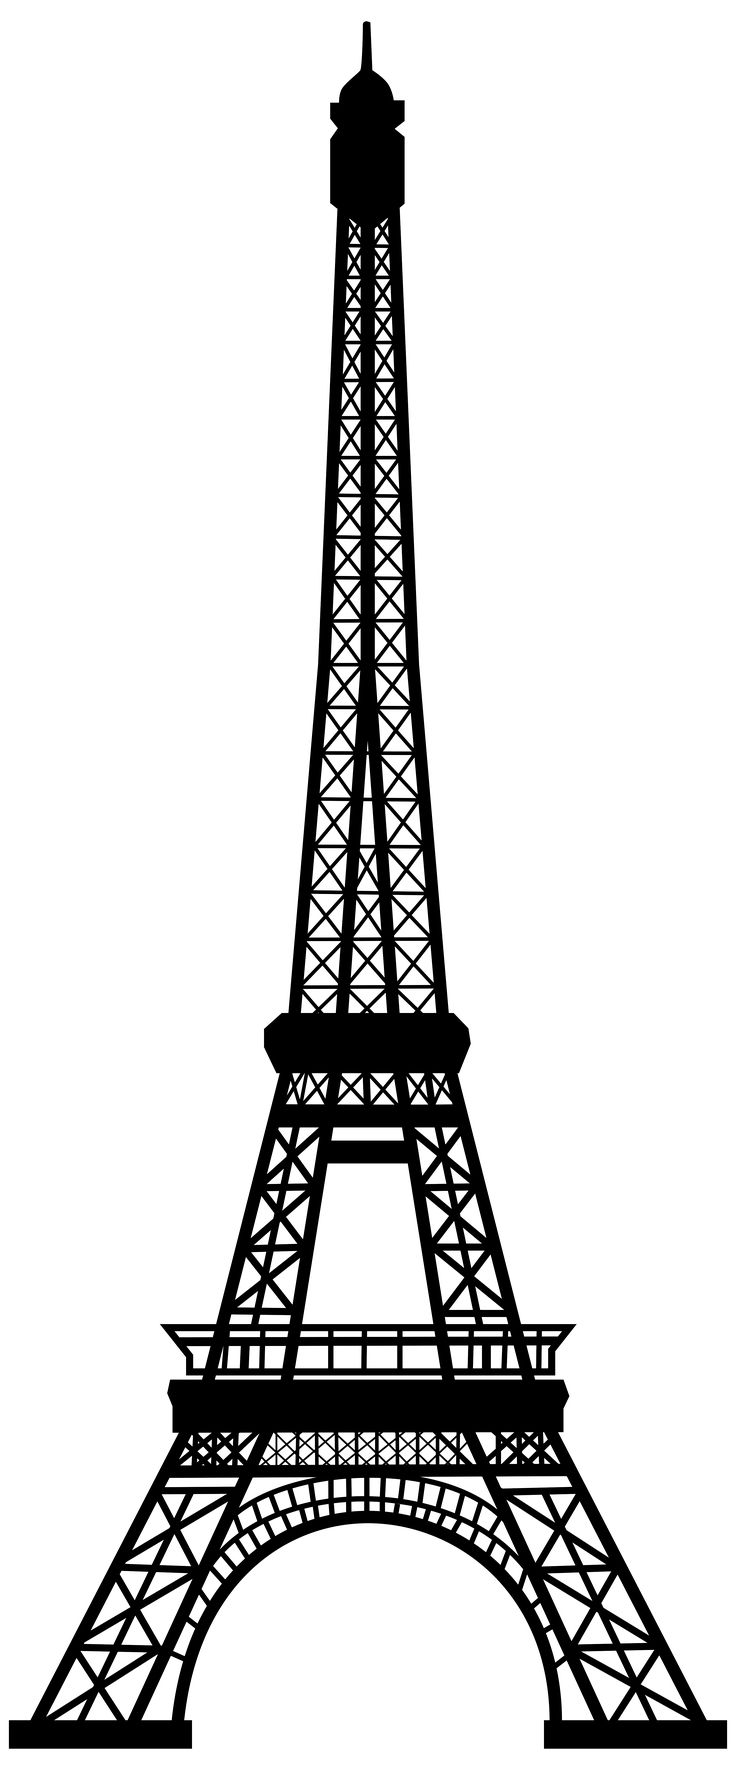 Tower clipart drawing #6